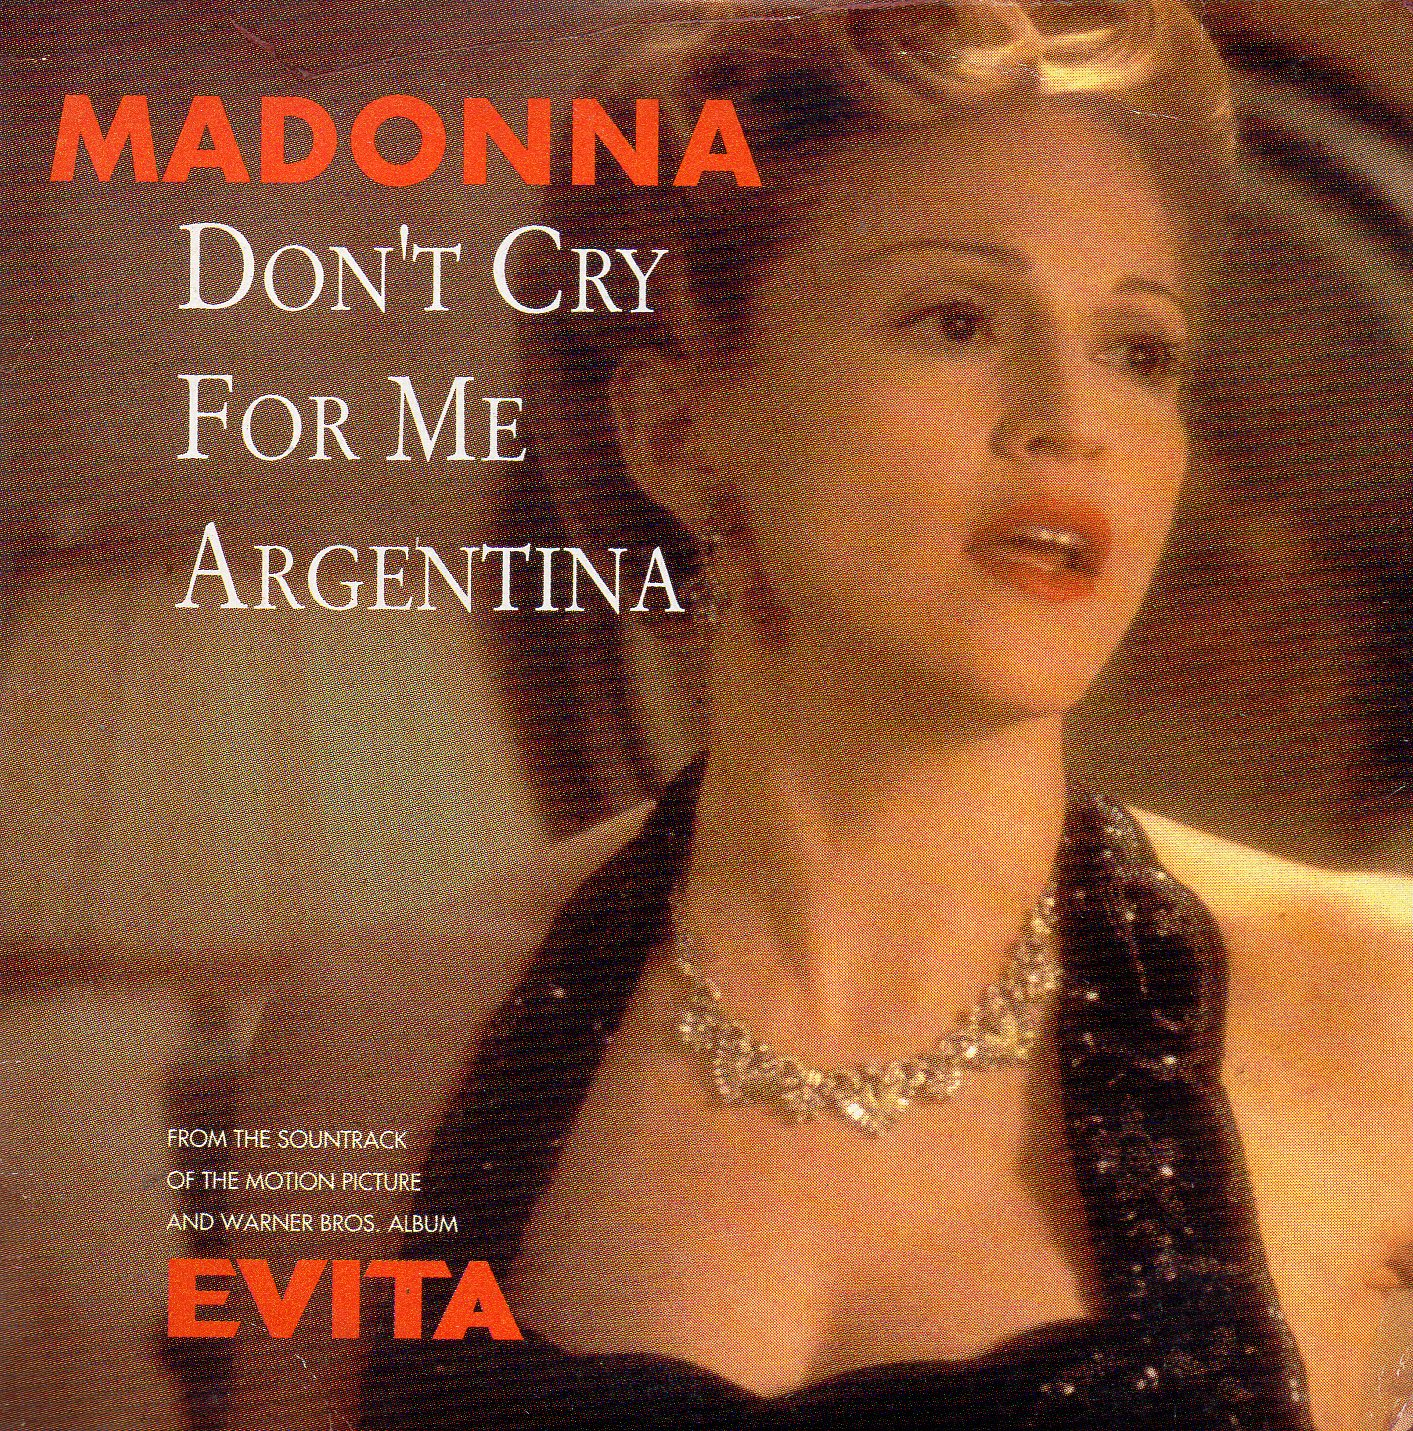 MADONNA - Don't Tell Me - U.s. Promo Issue - Radio Edit 4:10/lp Vers. 4:40